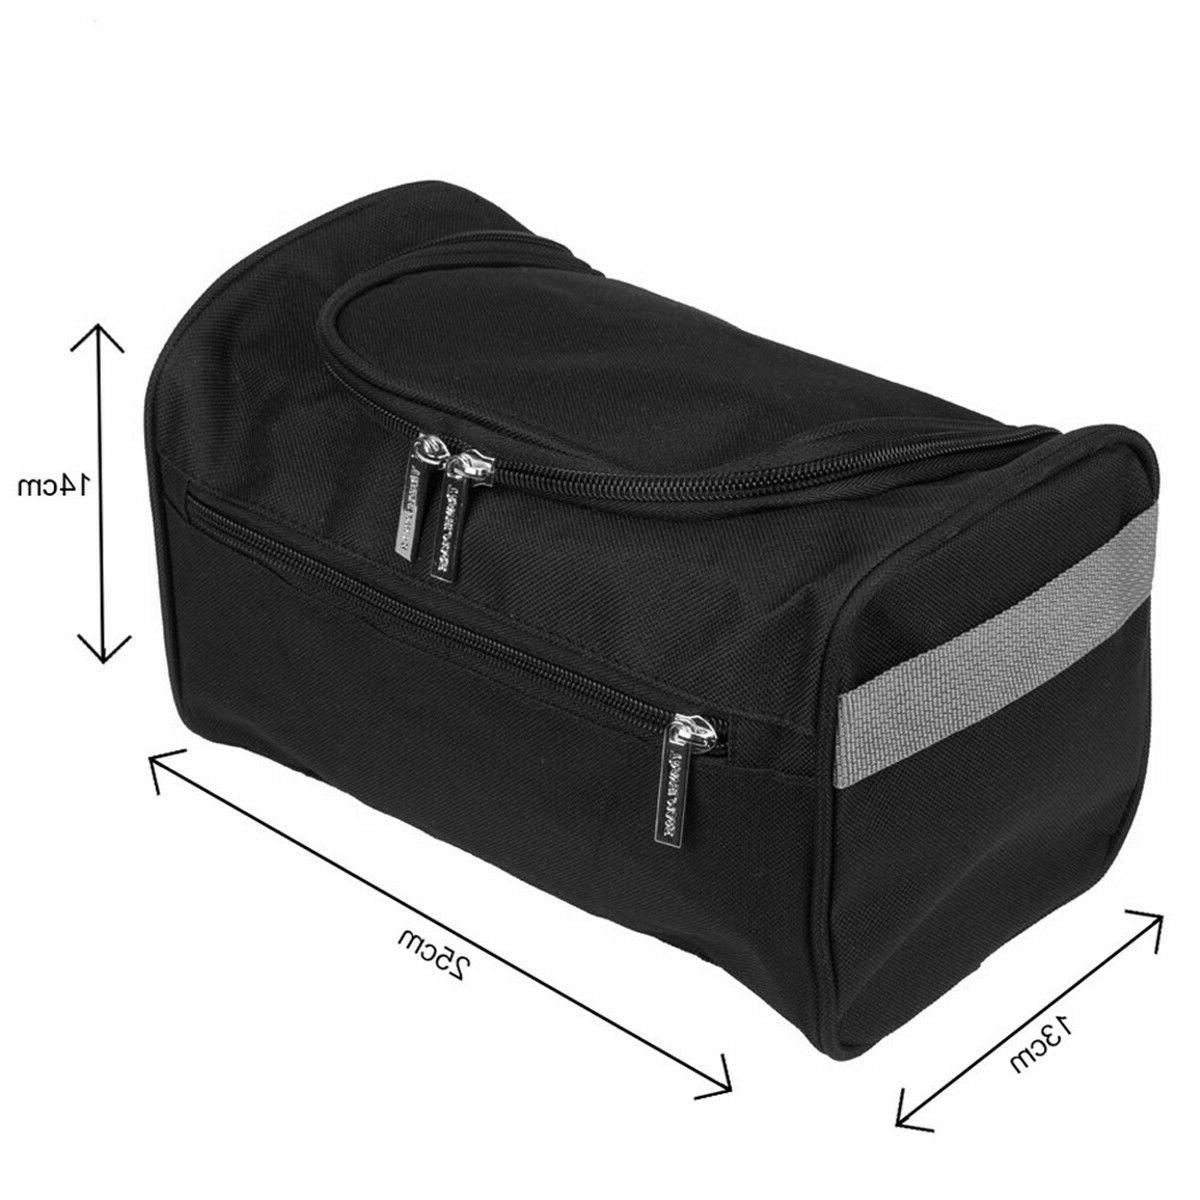 Travel Toiletry Kit for - Shaving bags